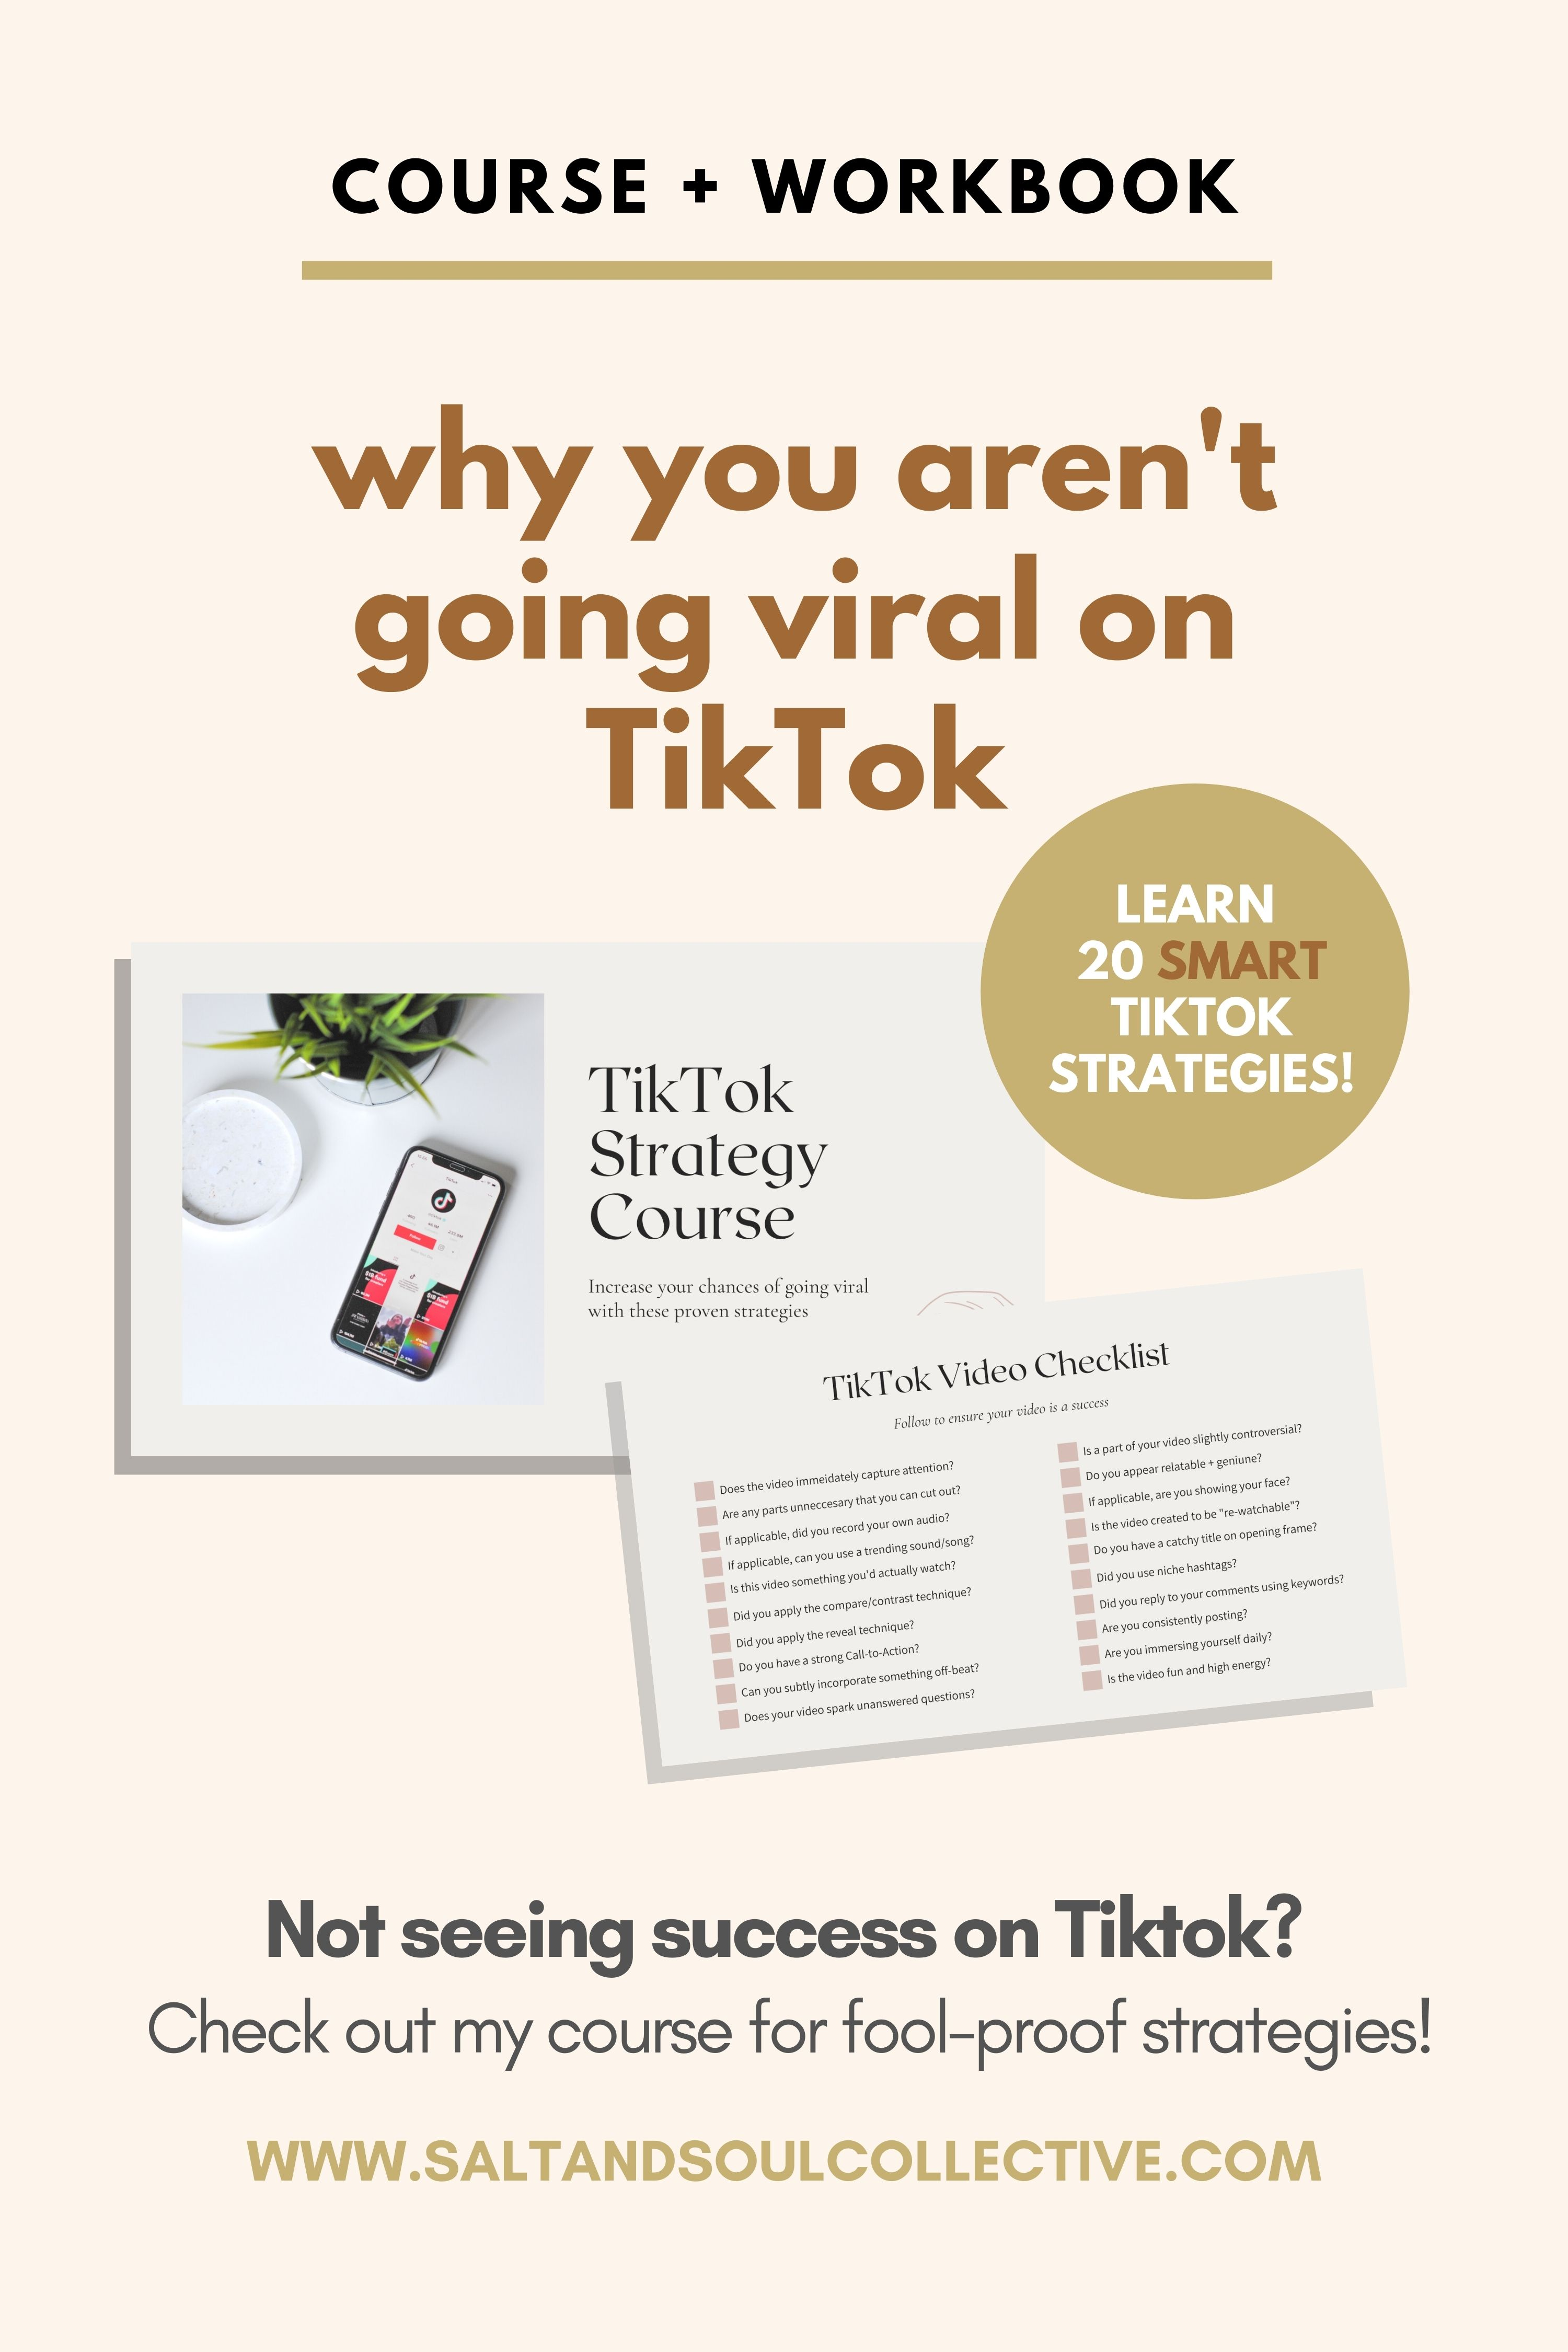 Learn How To Go Viral On Tik Tok 20 Smart Tiktok Strategies How To Get Followers Social Media How Are You Feeling